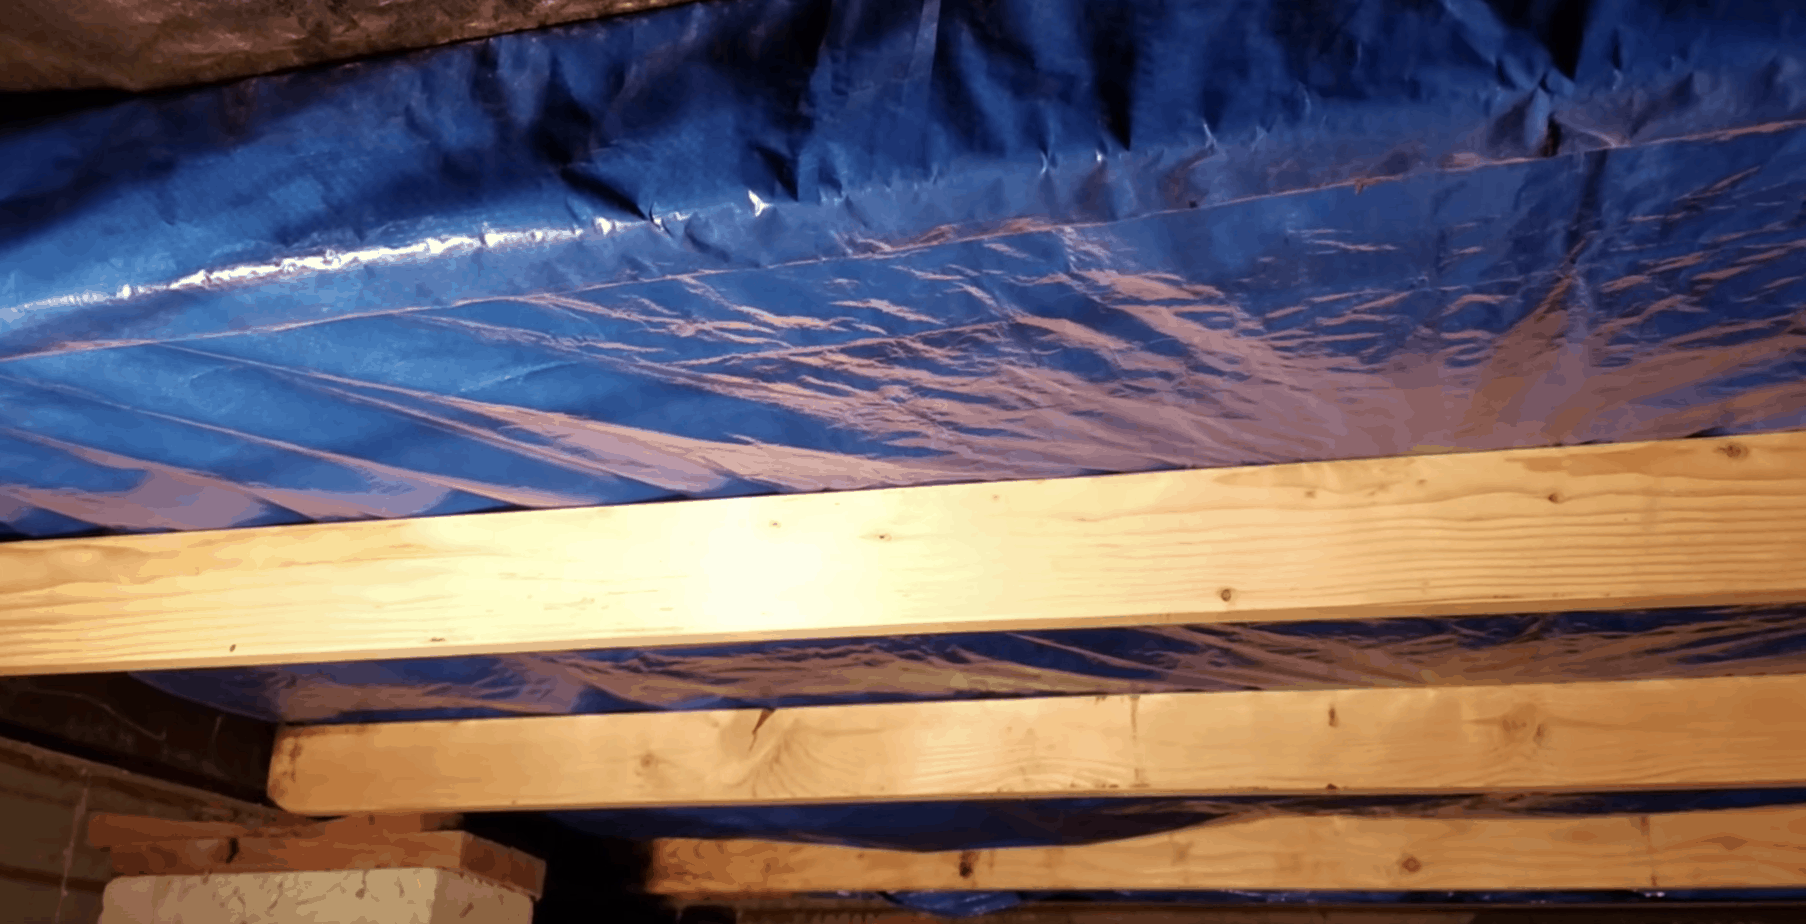 How To Insulate And Repair Your Mobile Home Underbelly Mobile Home Repair Mobile Home Home Insulation